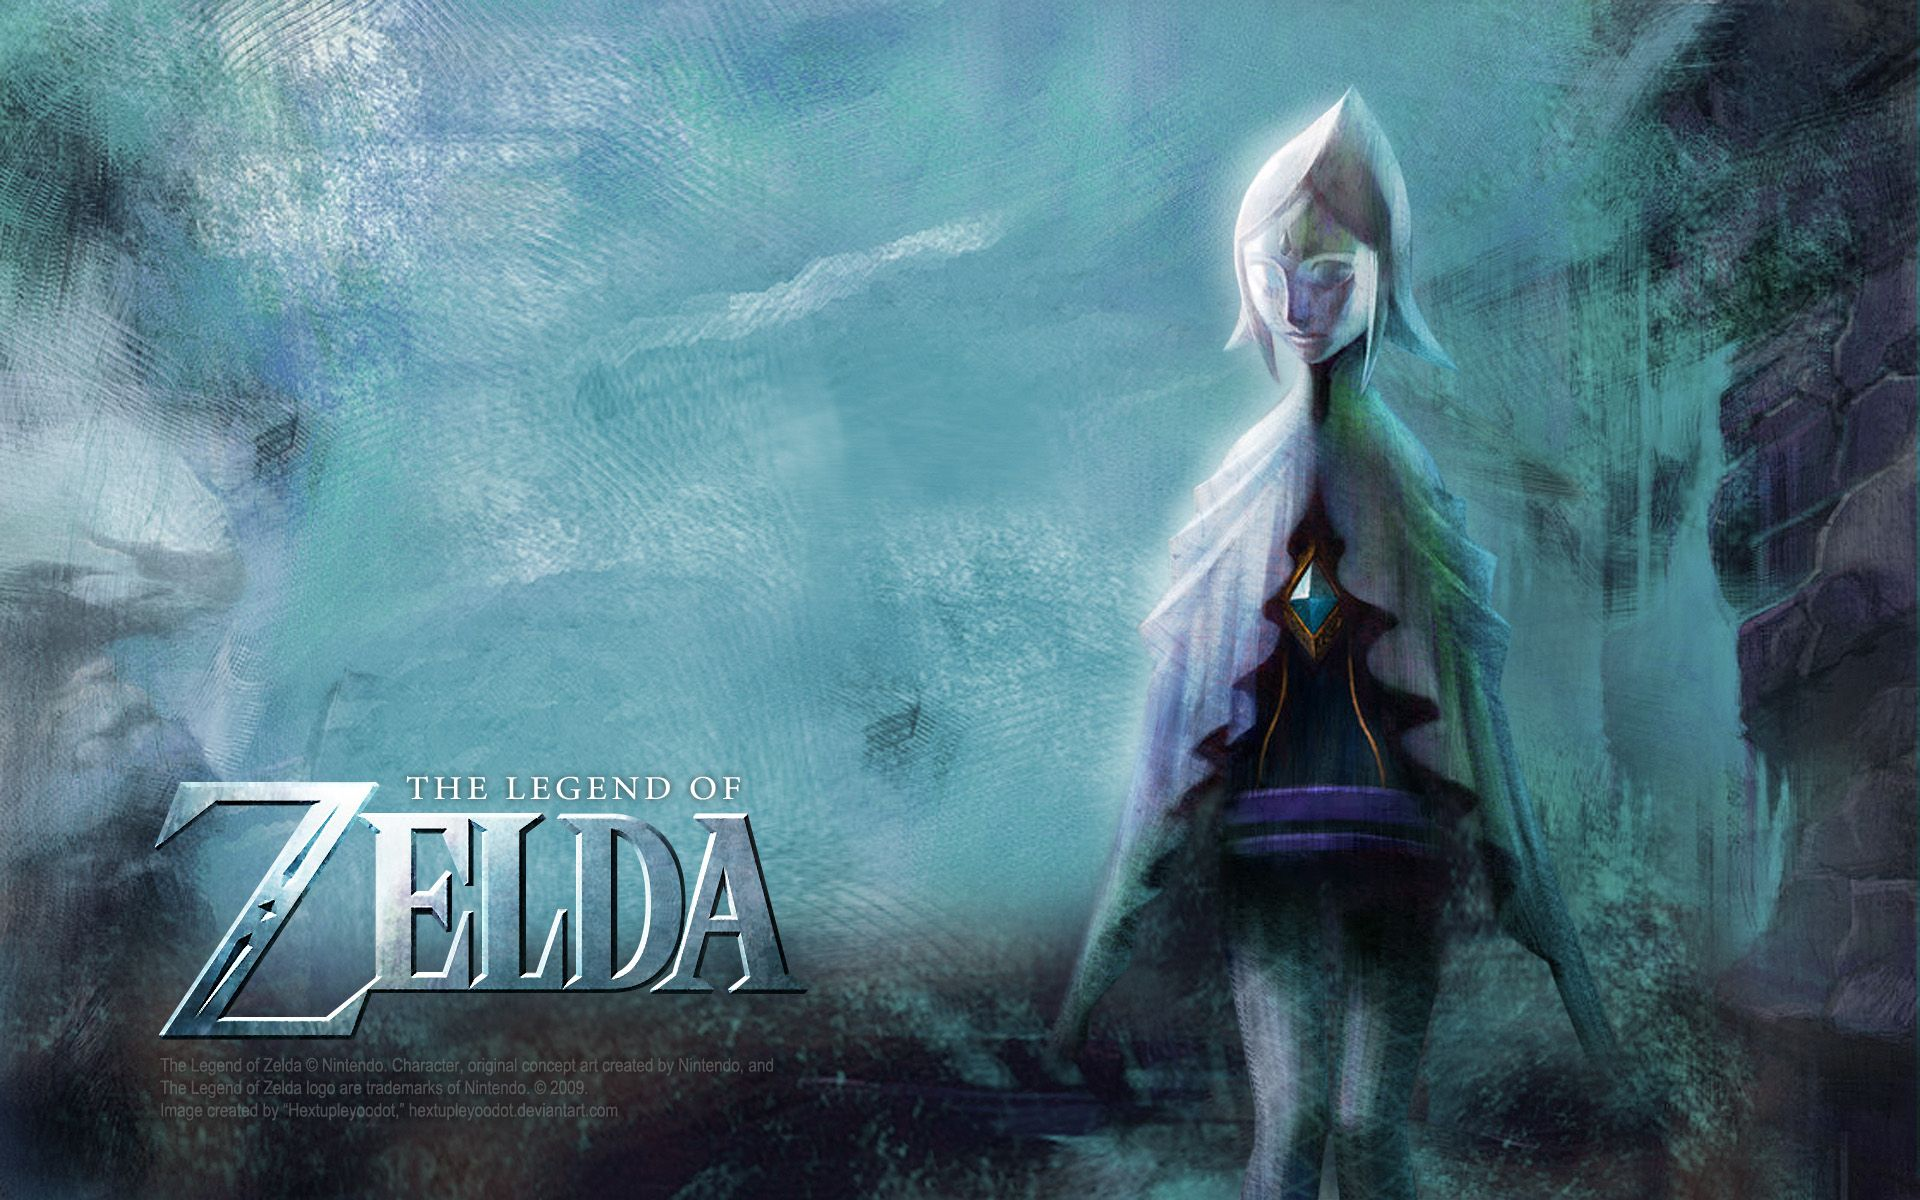 The Legend Of Zelda Wallpapers Pictures Find Best Latest And HD For Your PC Desktop Background Mobile Phones